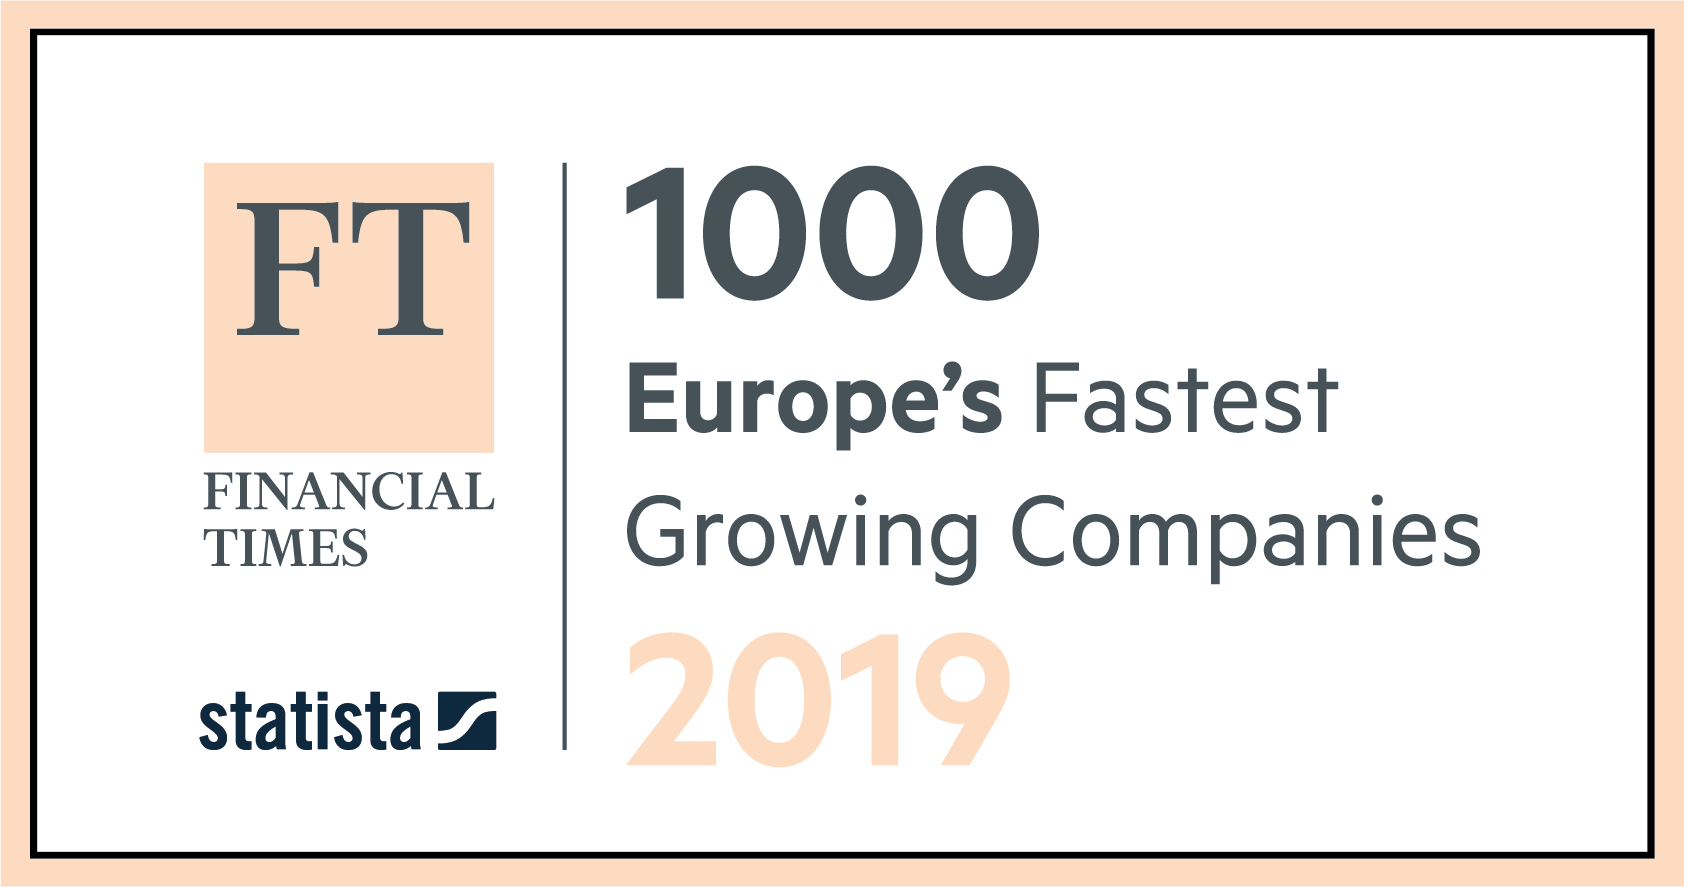 Financial Times Award for Top 1000 fastest growing companies